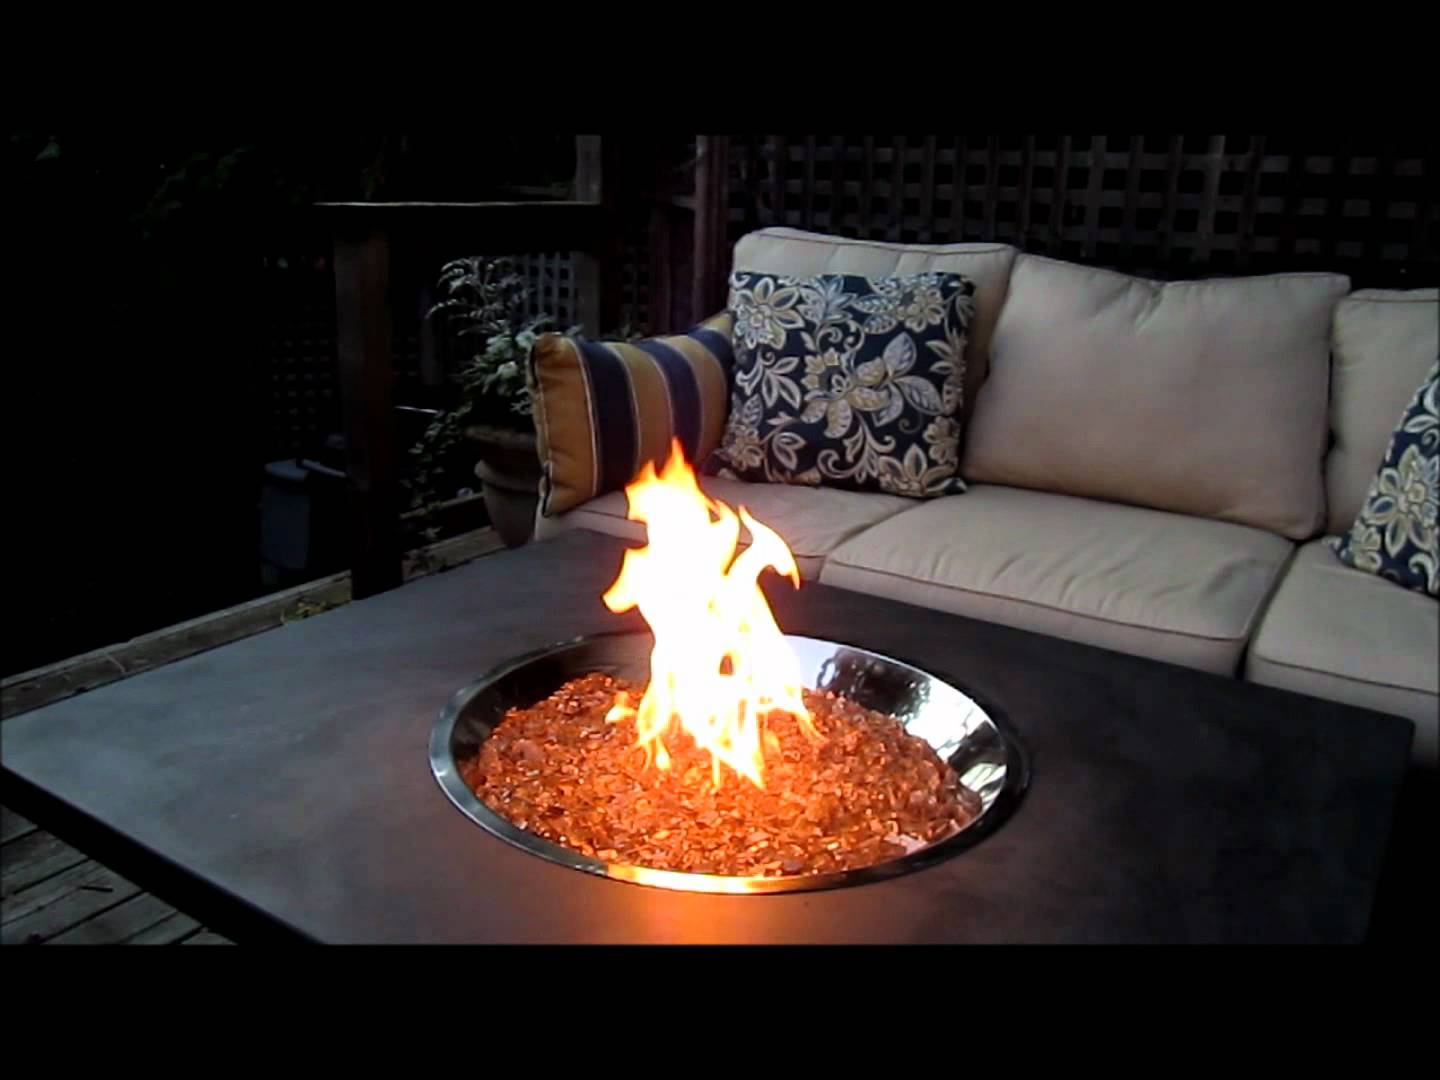 Best Outdoor Fire Bowls and Patio Fire Pit Bowls